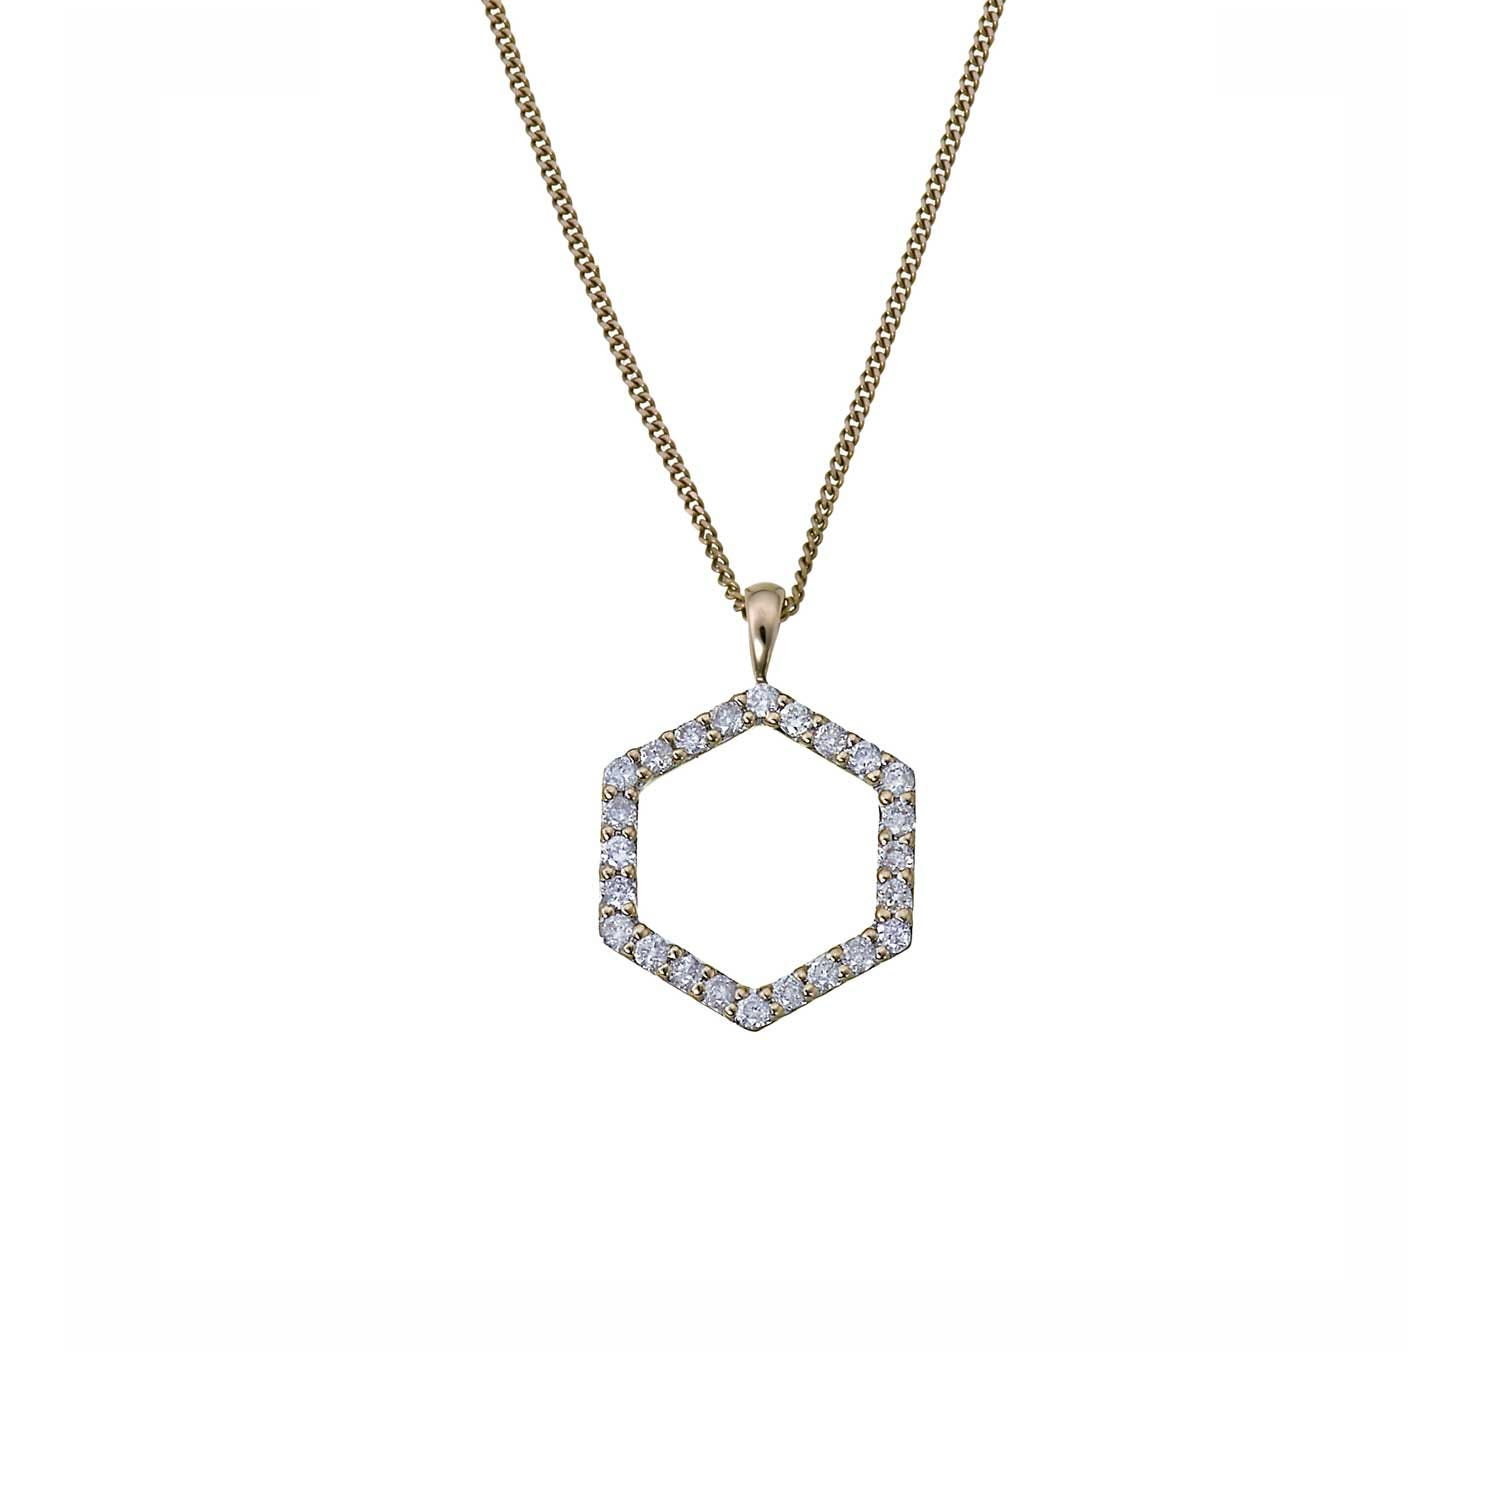 Hexagon Diamond Necklace. 9k White Gold / White Diamonds - Image